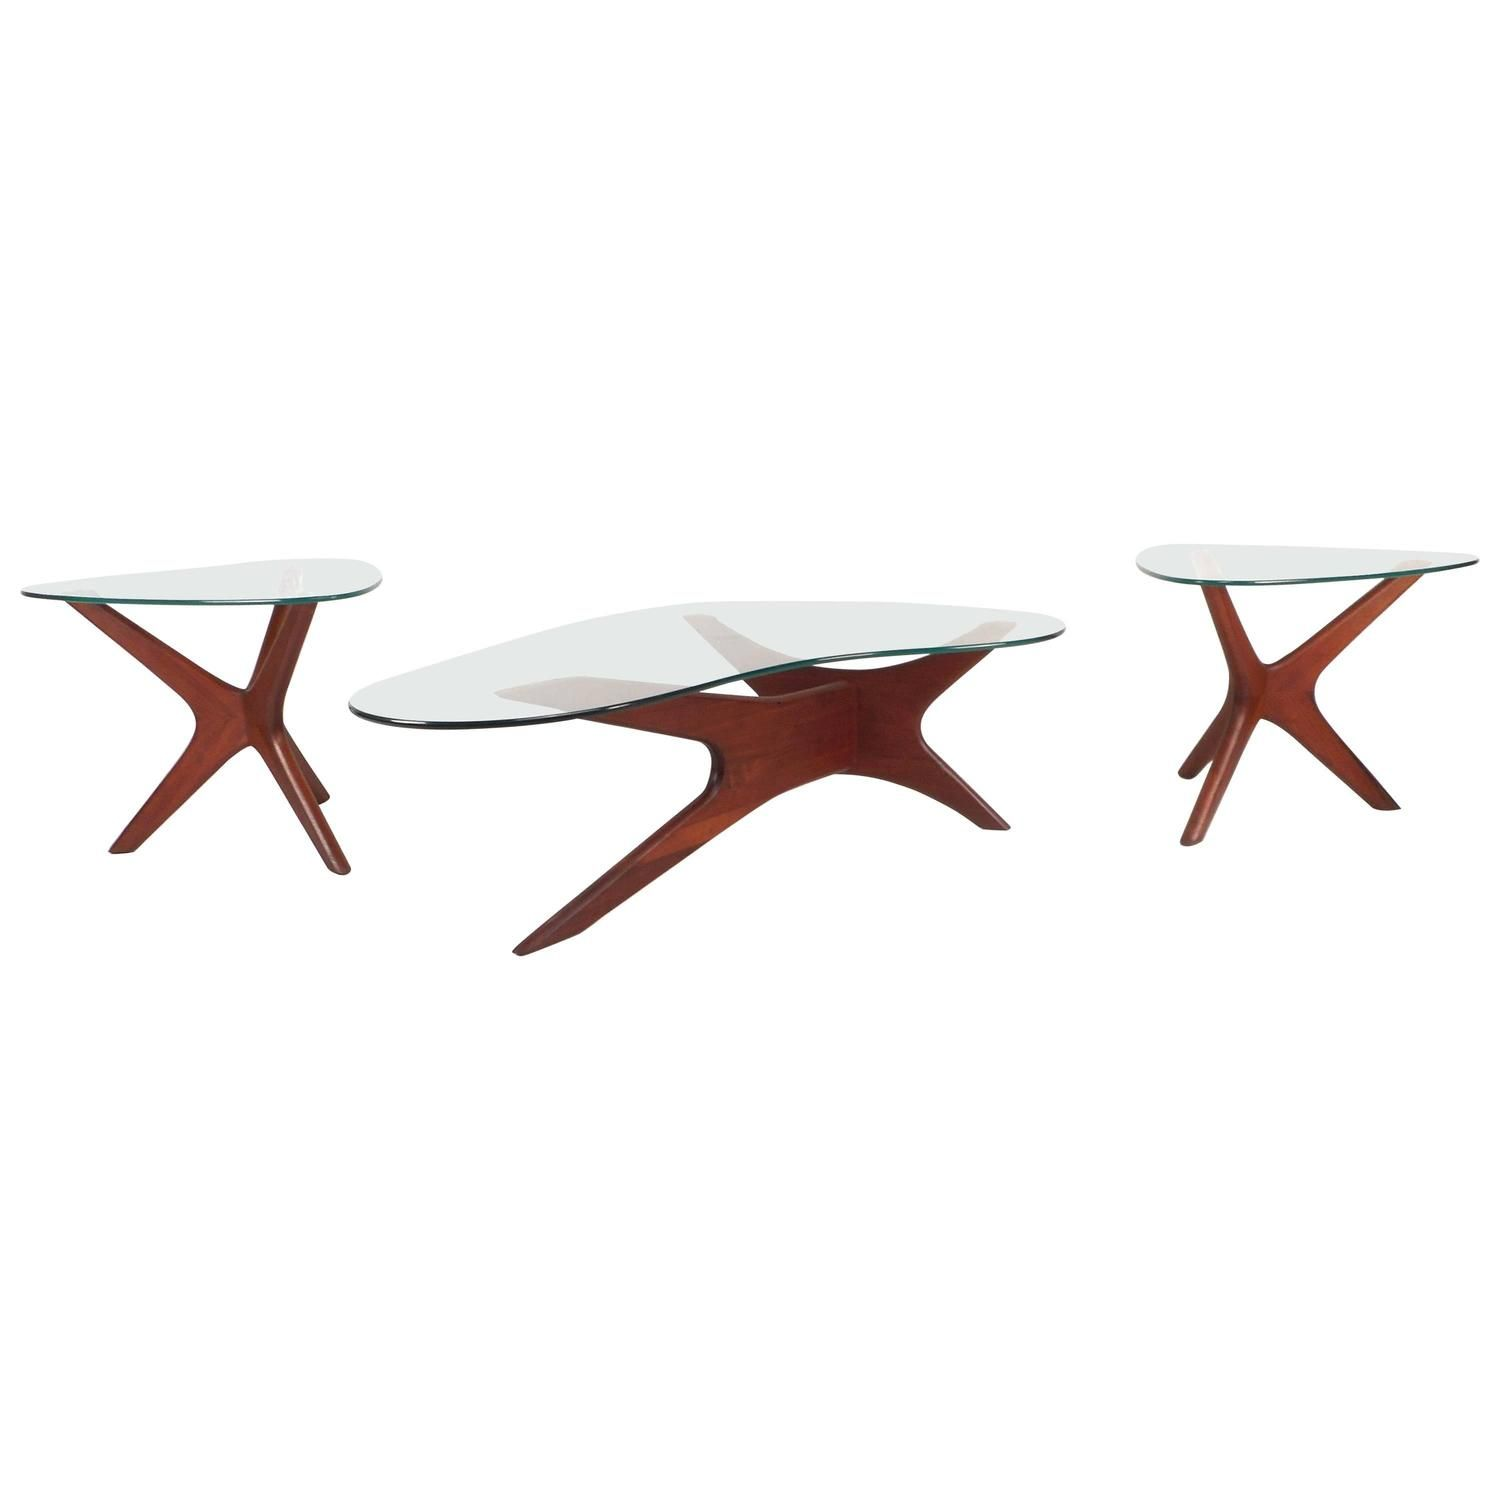 Set Of Mid Century Modern Glass Coffee Tables By Adrian Pearsall Modern Glass Coffee Table Glass Coffee Table Coffee Table [ 1500 x 1500 Pixel ]